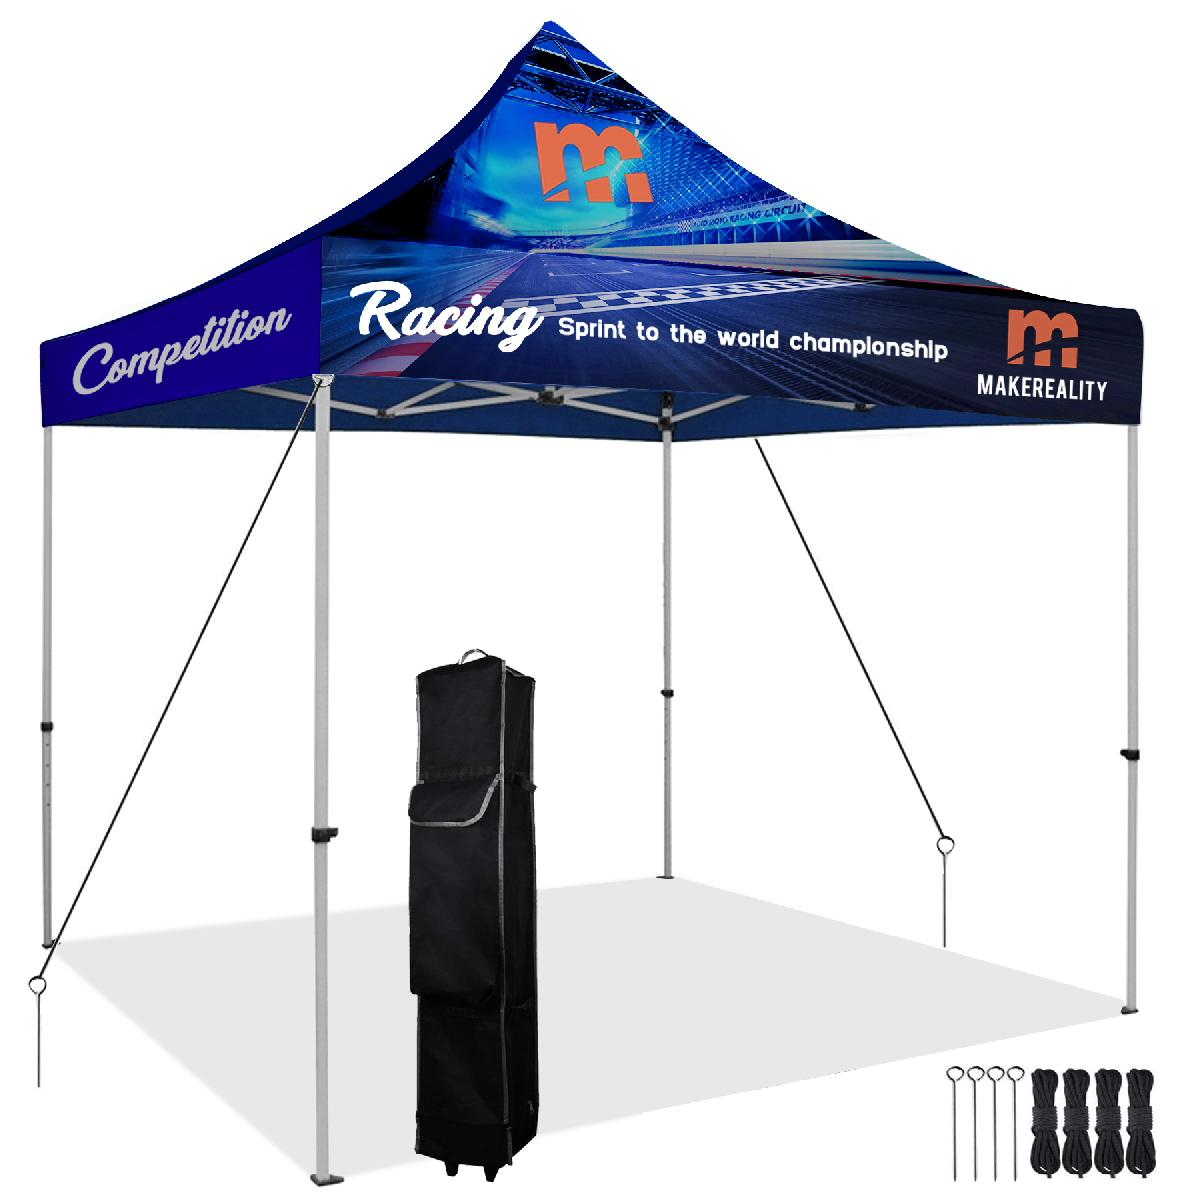 10' x 10' Pop Up Tent Kit (Full-Bleed Dye Sublimation)